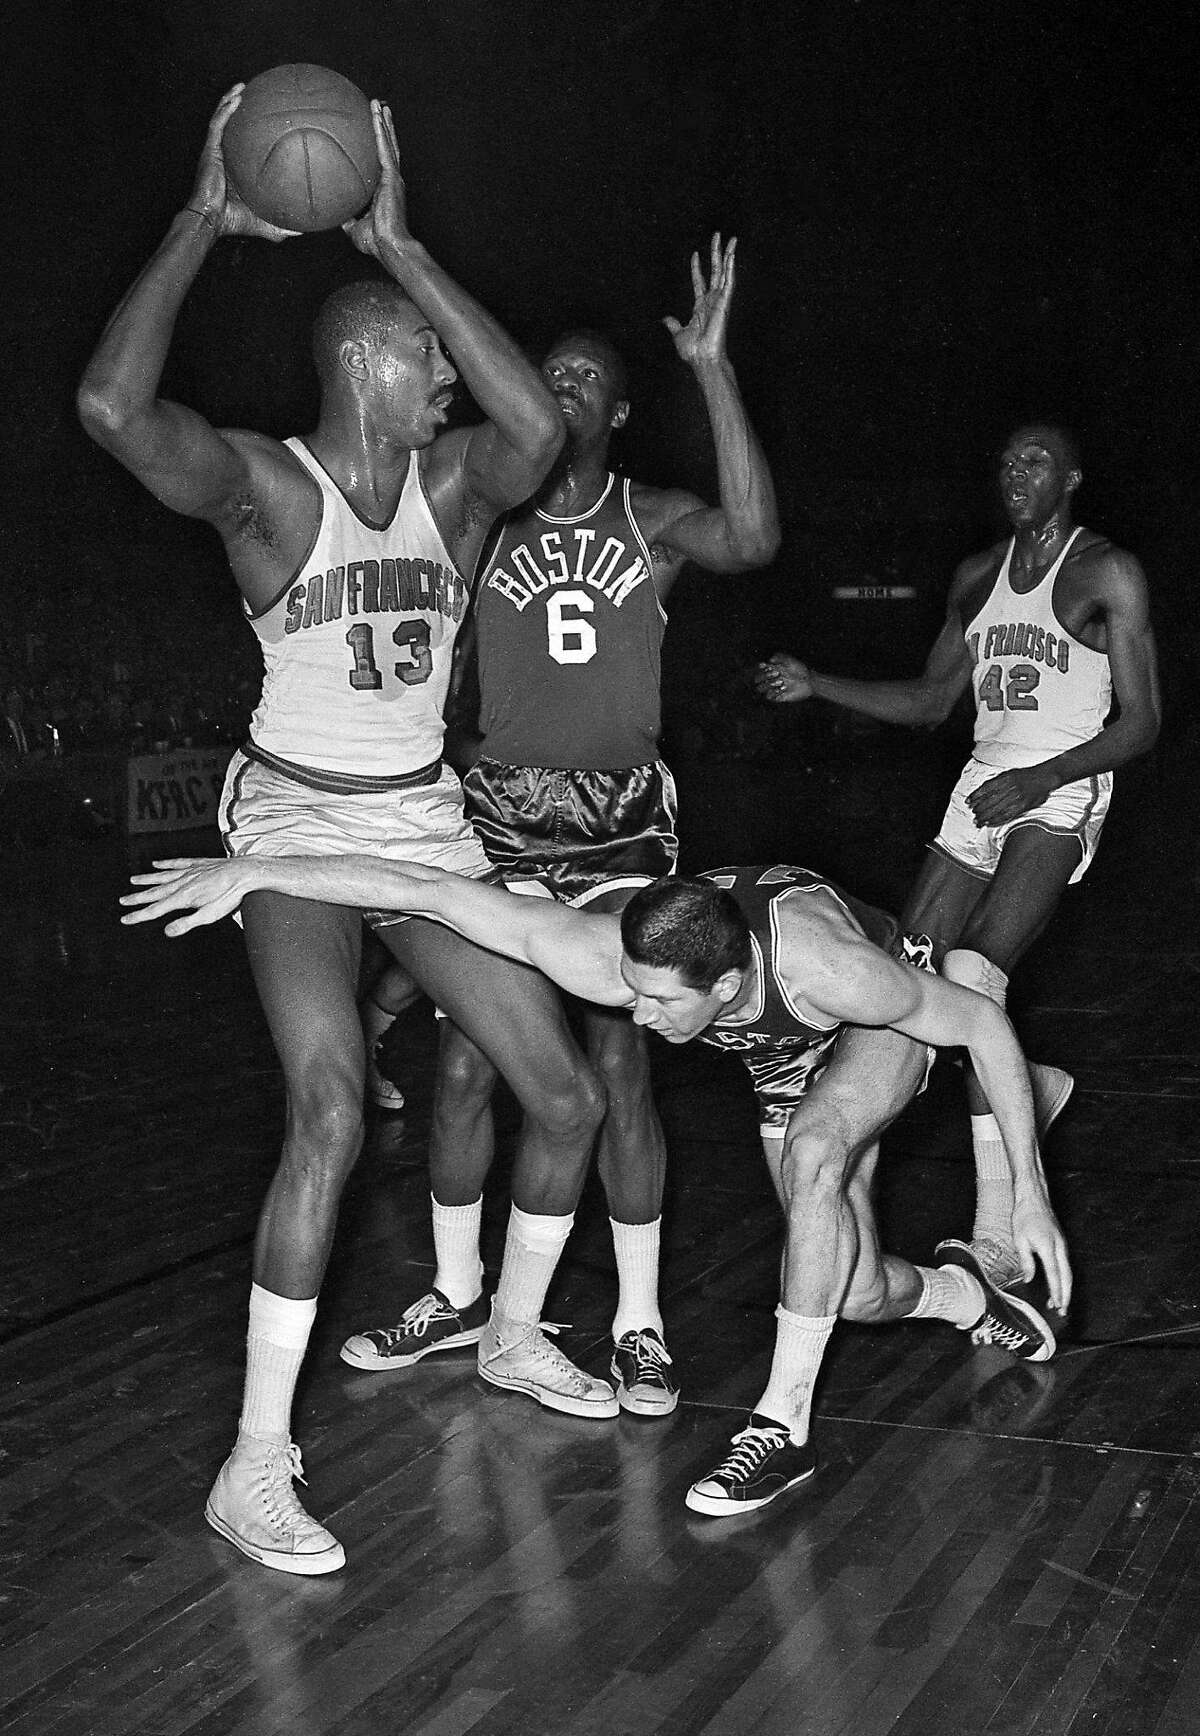 Western Conference finals, Game 7, 1964: With Wilt Chamberlain, Guy Rodgers, Tom Meschery and Al Attles scoring in double figures (39 for Wilt), the San Francisco Warriors beat the Bob Pettit-Cliff Hagan St. Louis Hawks 105-95 to reach the Finals, where they lost to Boston in five games.